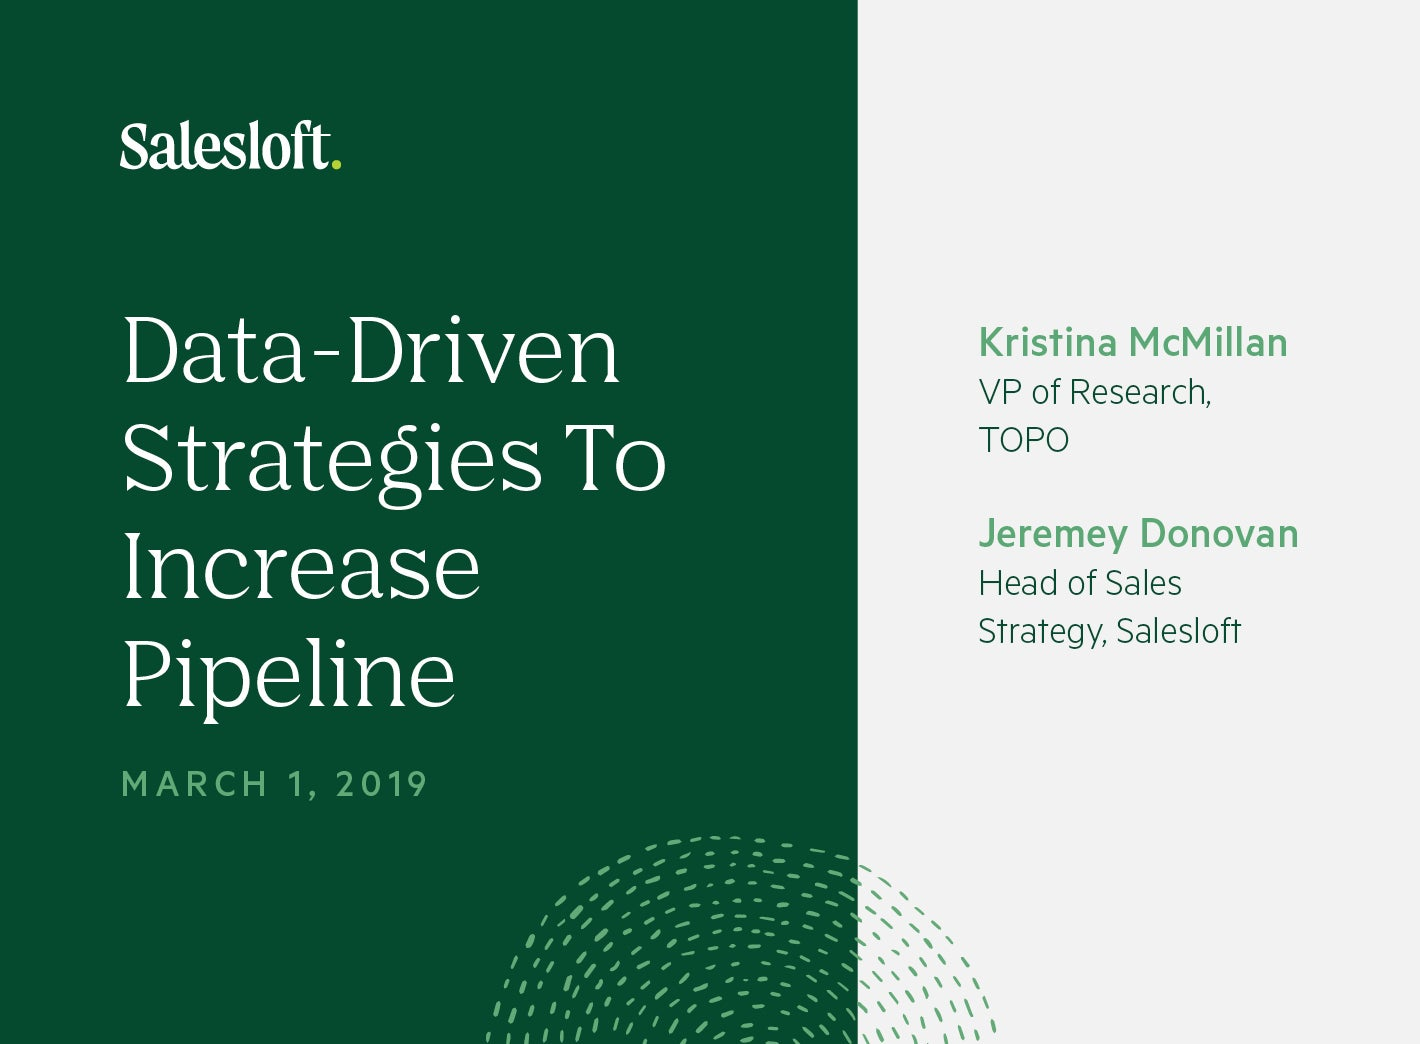 Data-Driven Strategies To Increase Pipeline